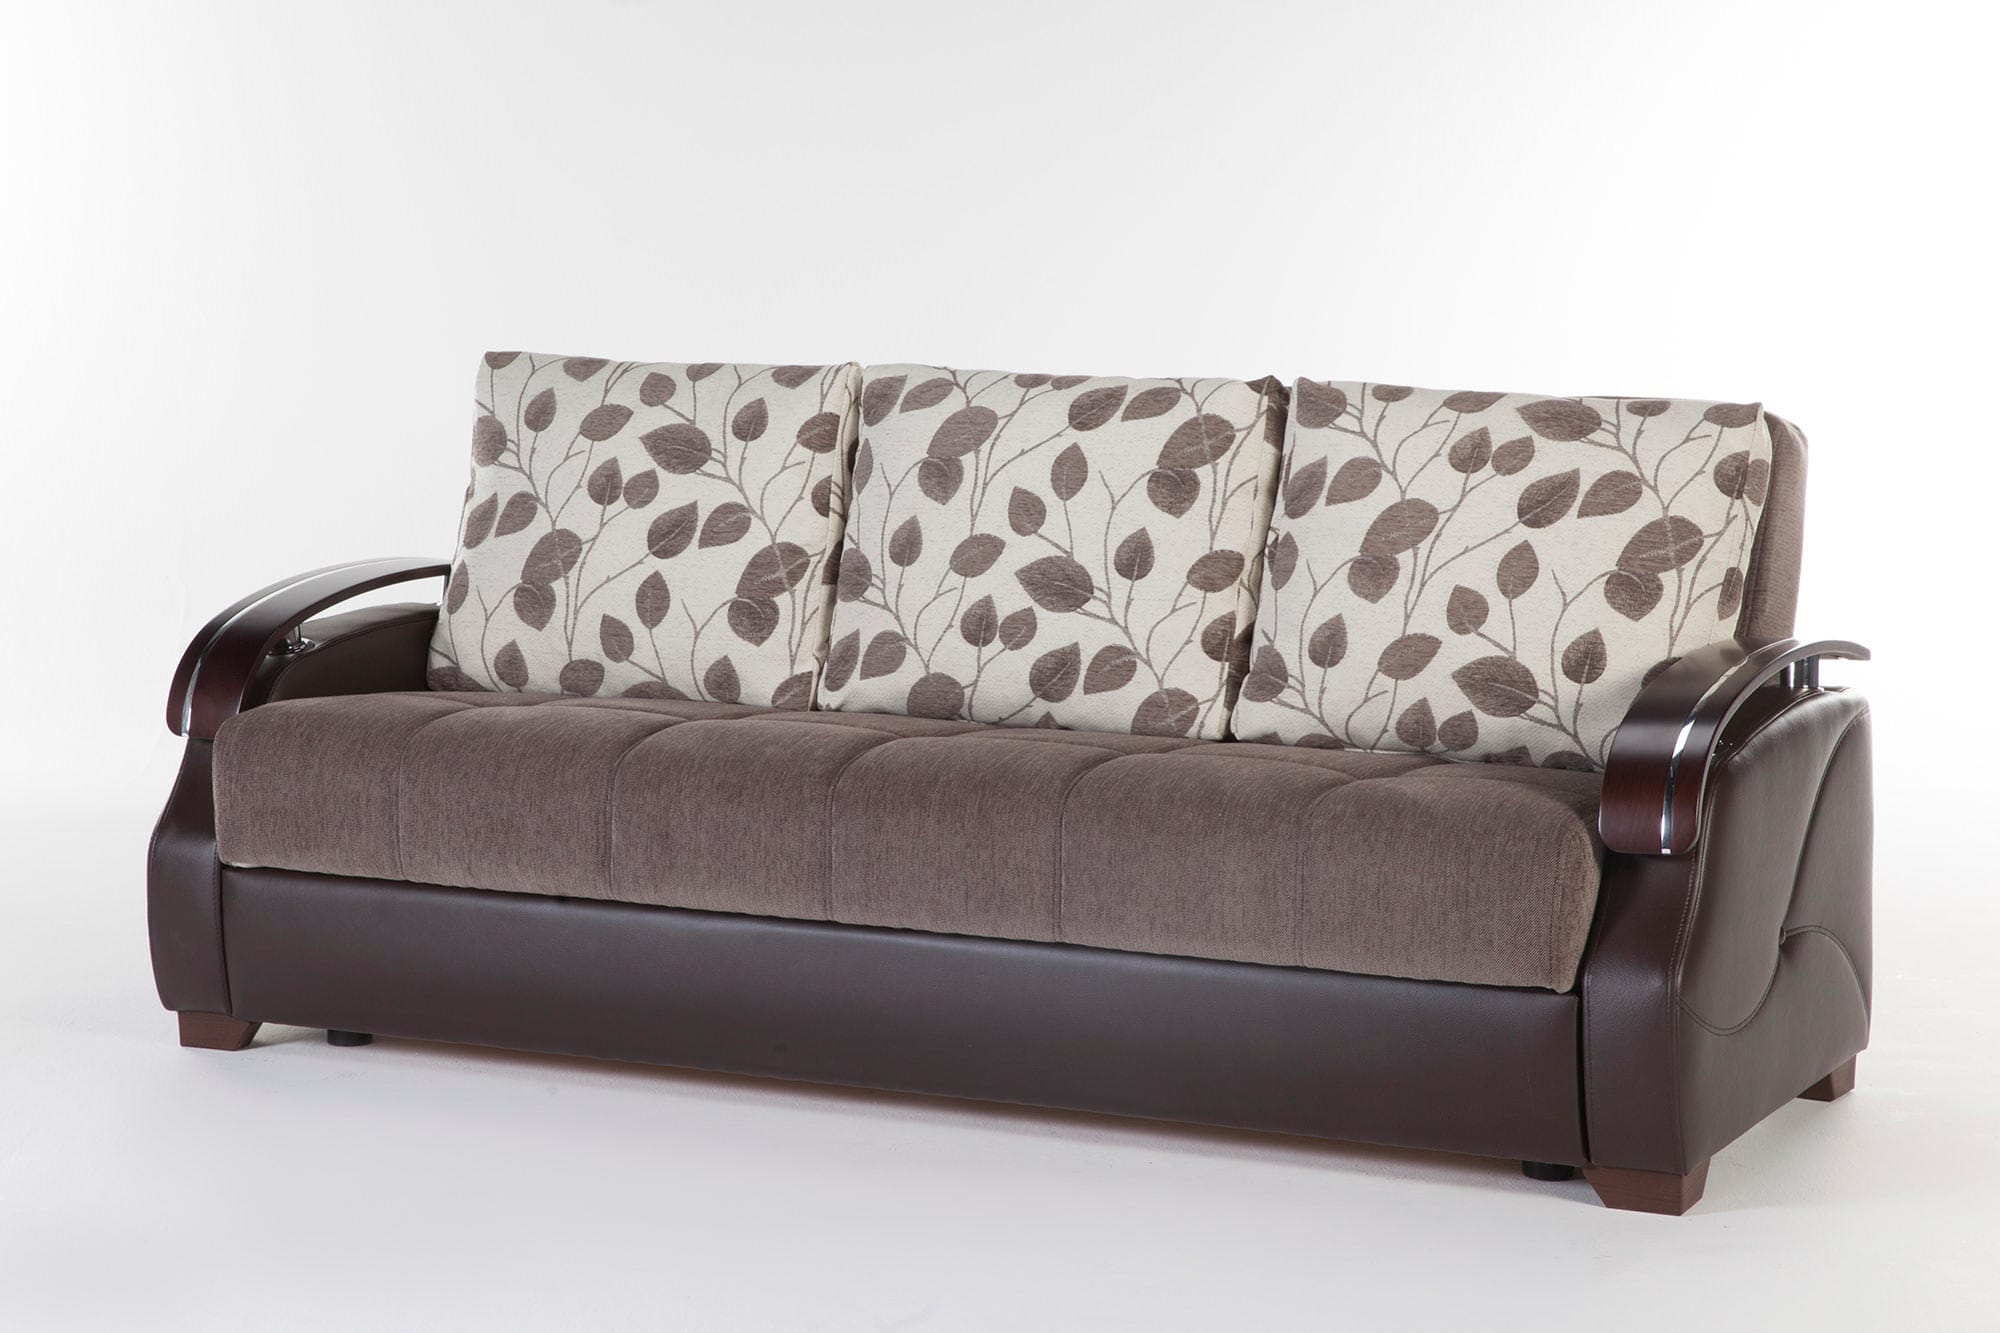 Costa Armoni Brown Convertible Sofa Bed by Istikbal Furniture